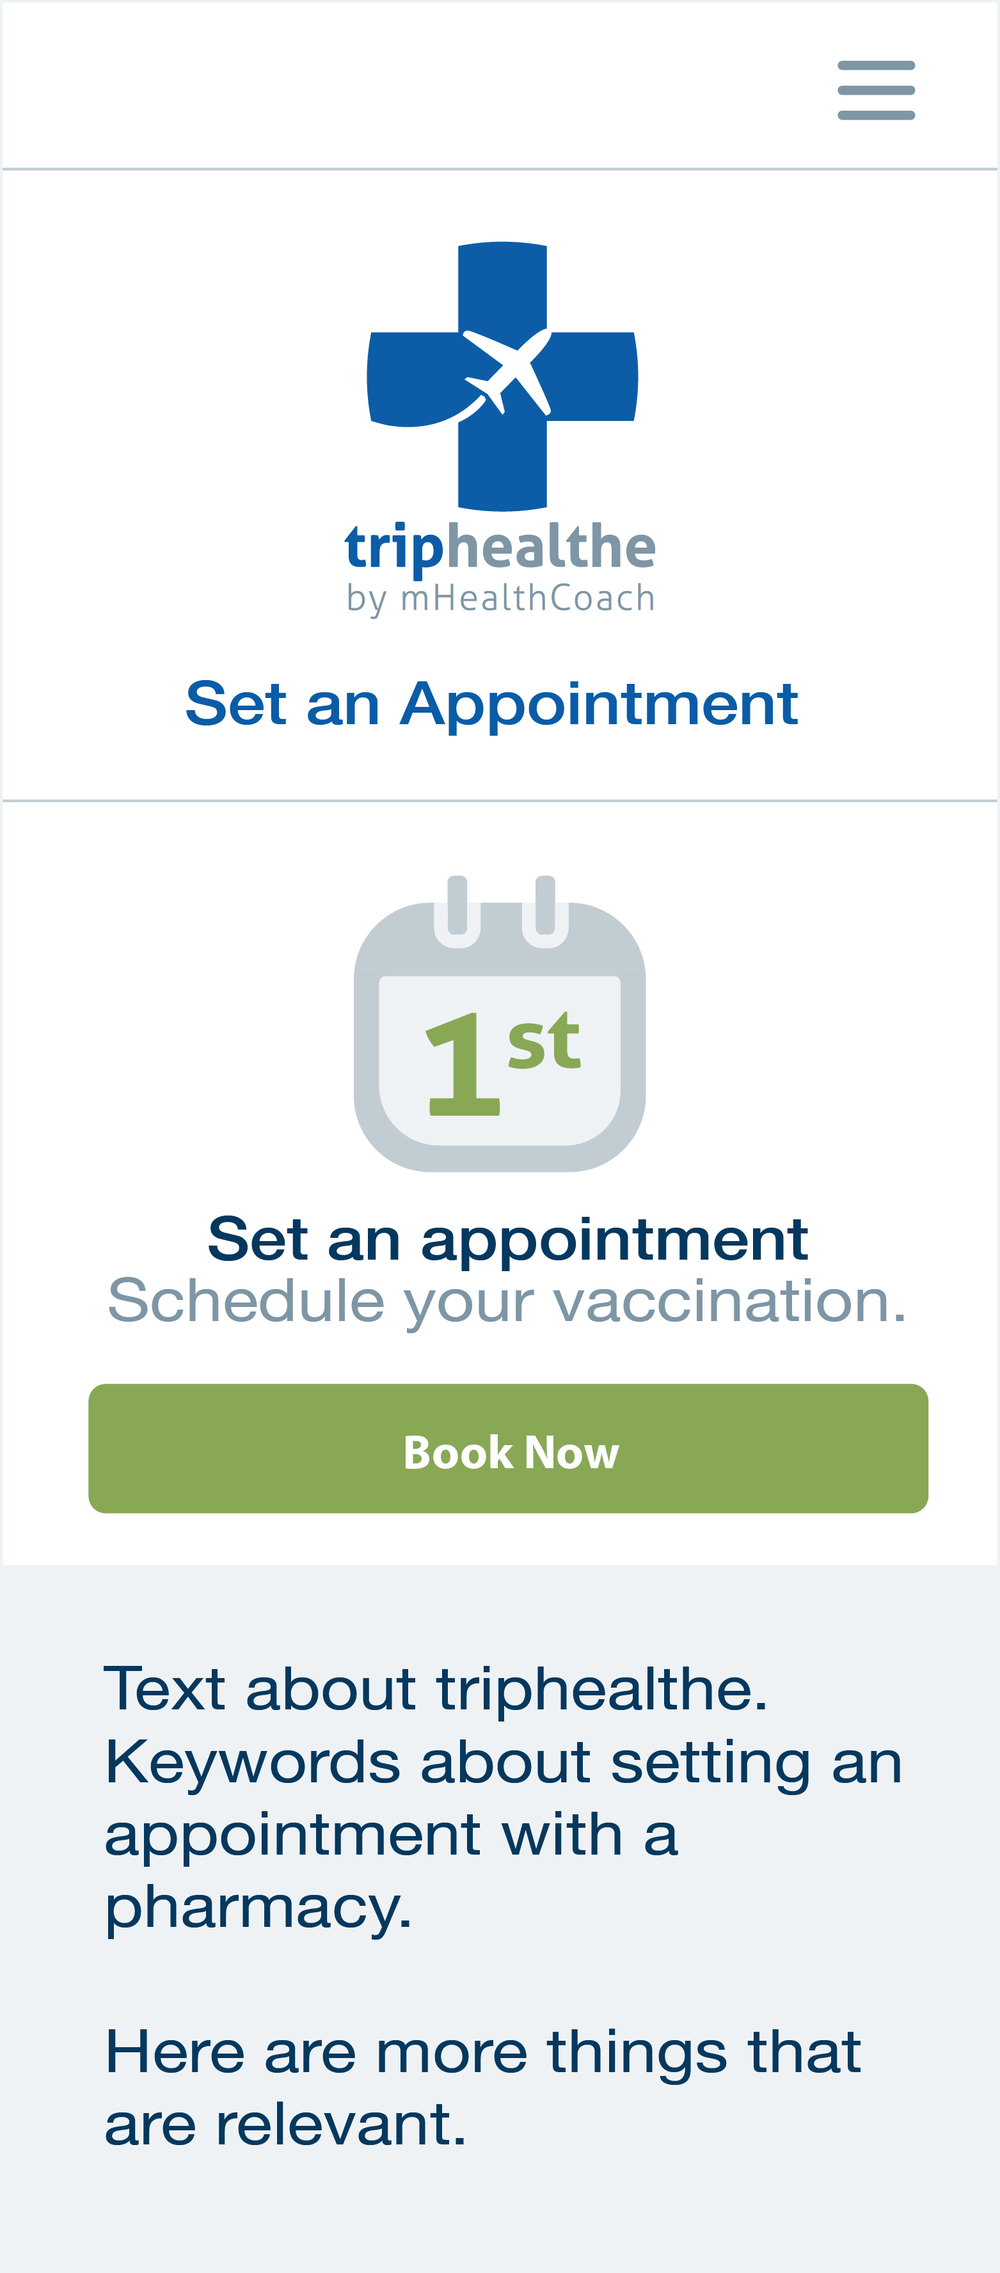 triphealhte-web-mobile_Set an Appointment.png